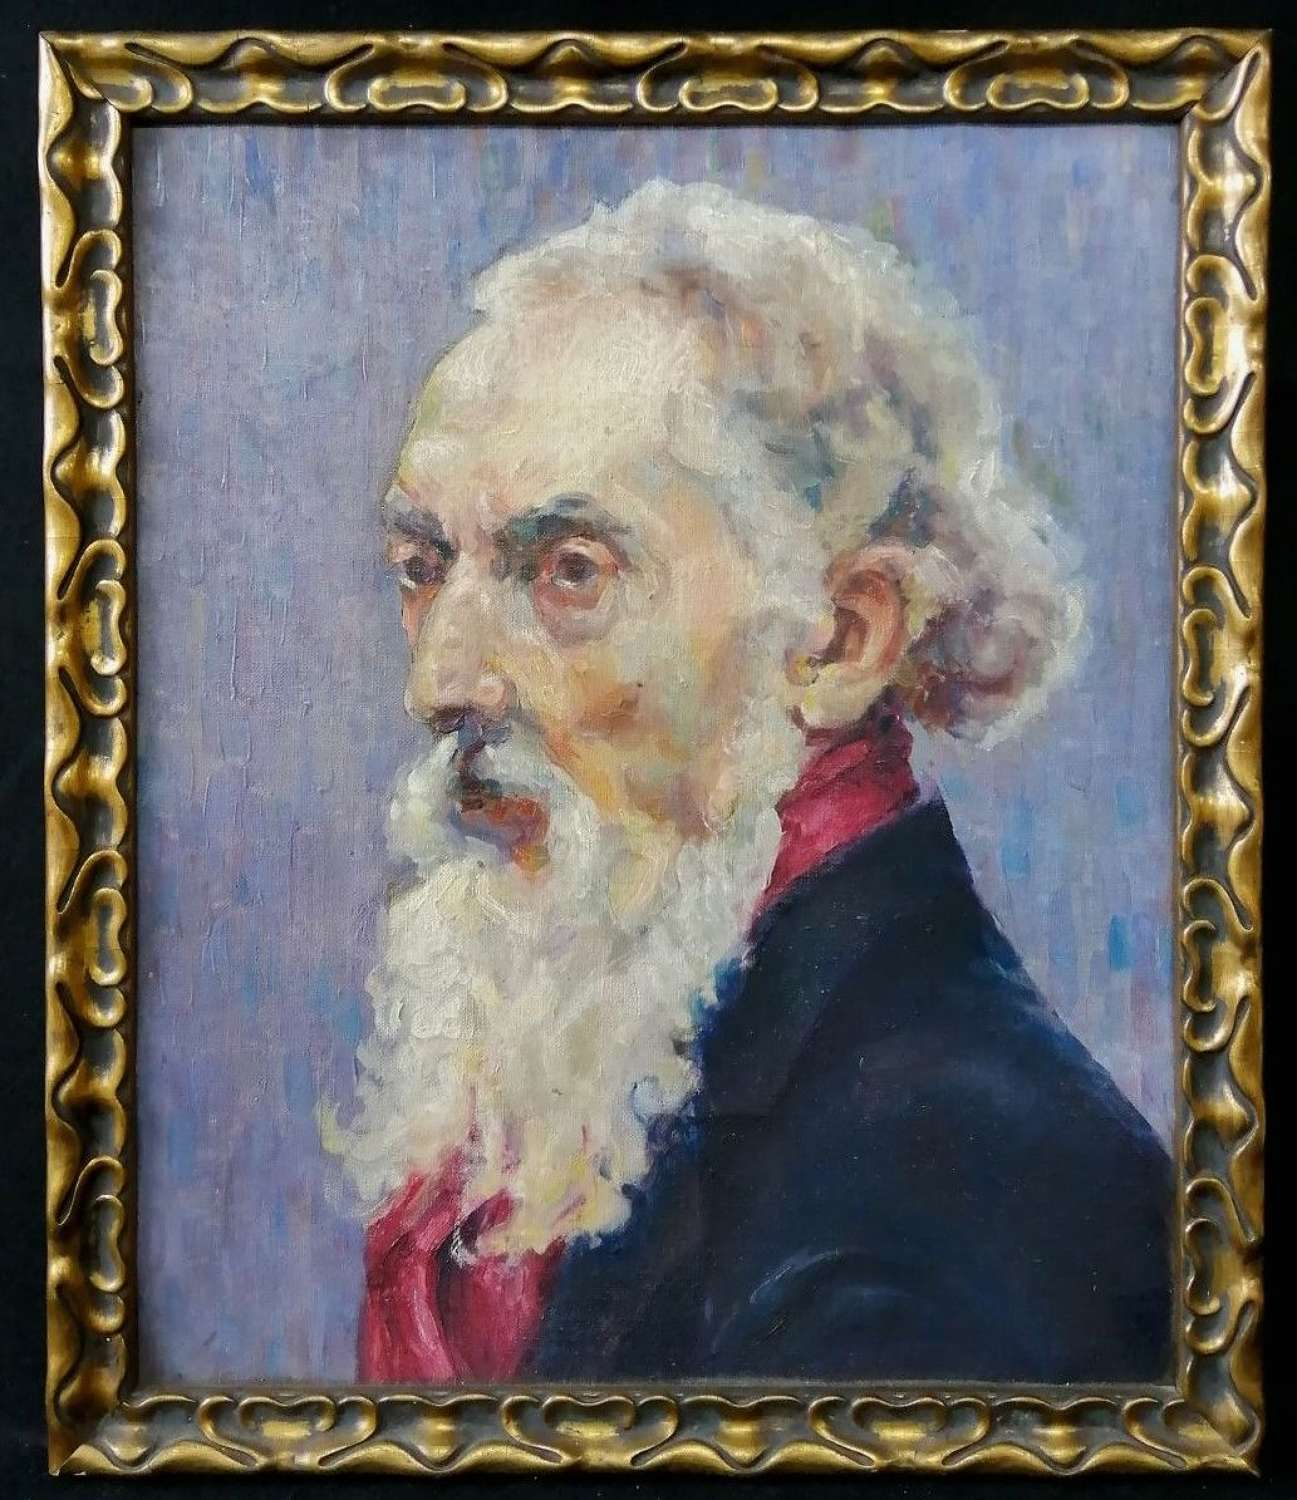 POST IMPRESSIONIST PORTRAIT (FRENCH, 2OTH CENTURY)